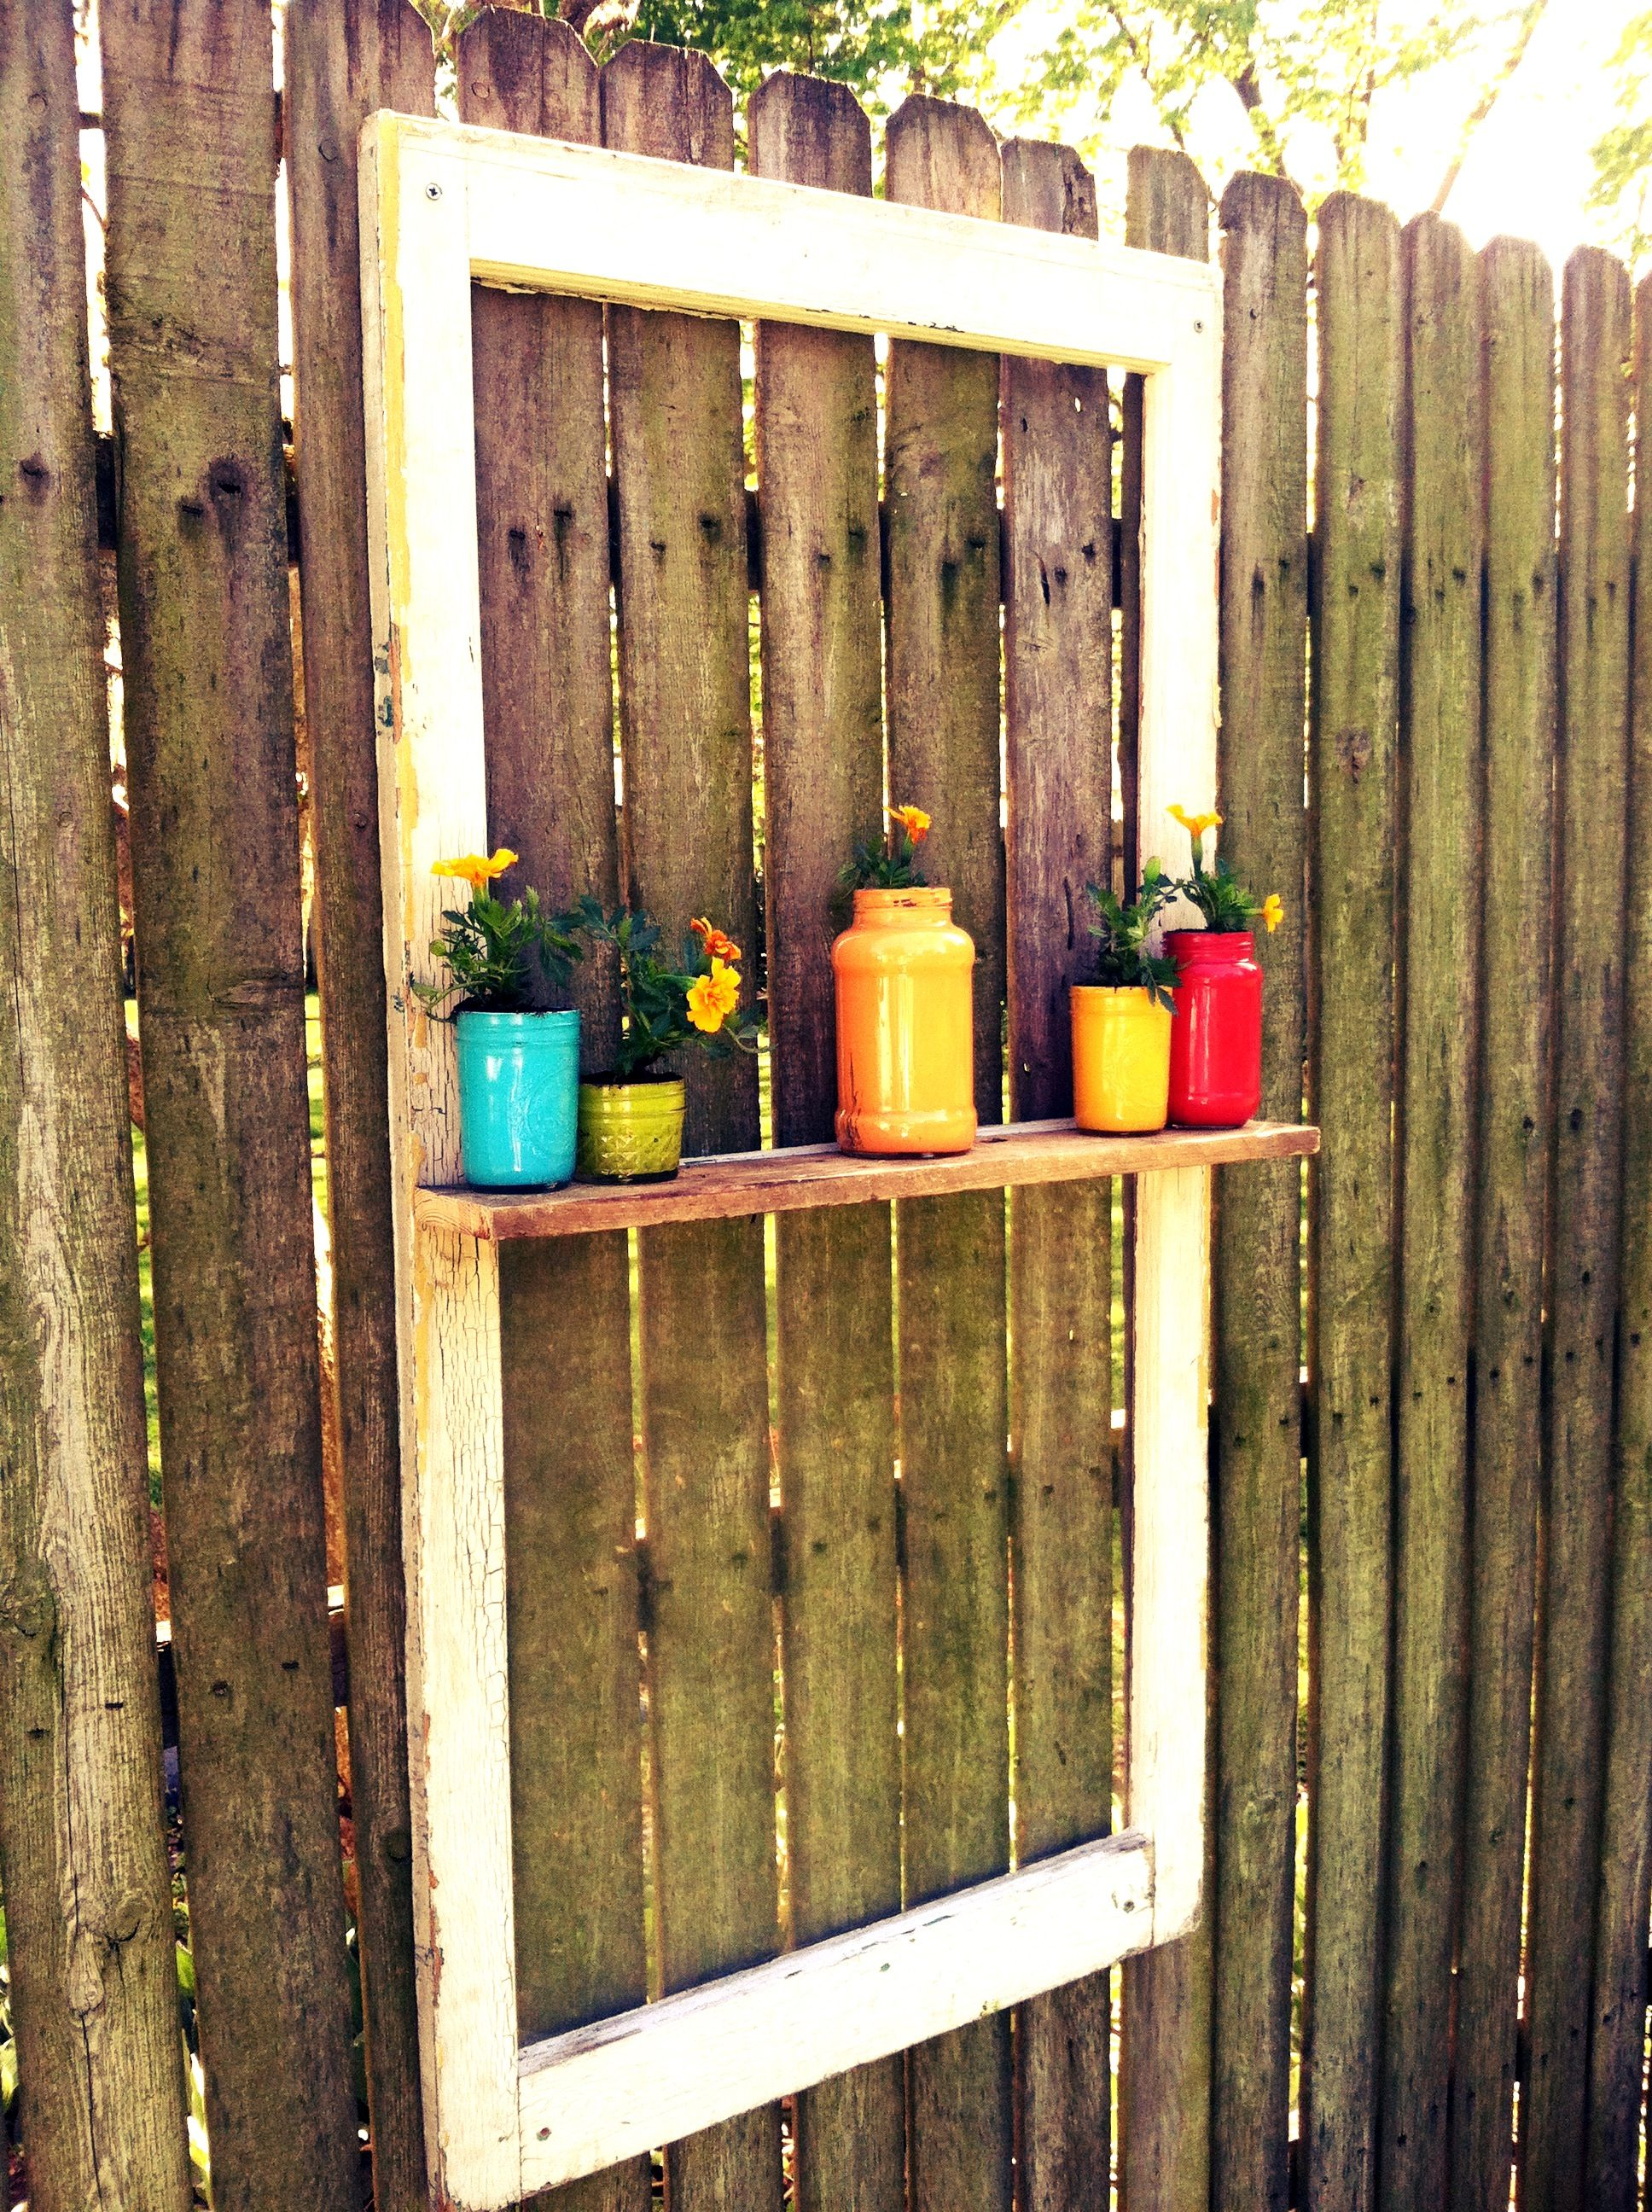 Viva plast wooden colours - Easy Decoration For Your Fence Old Window Scrap Piece Of Wood For Shelf